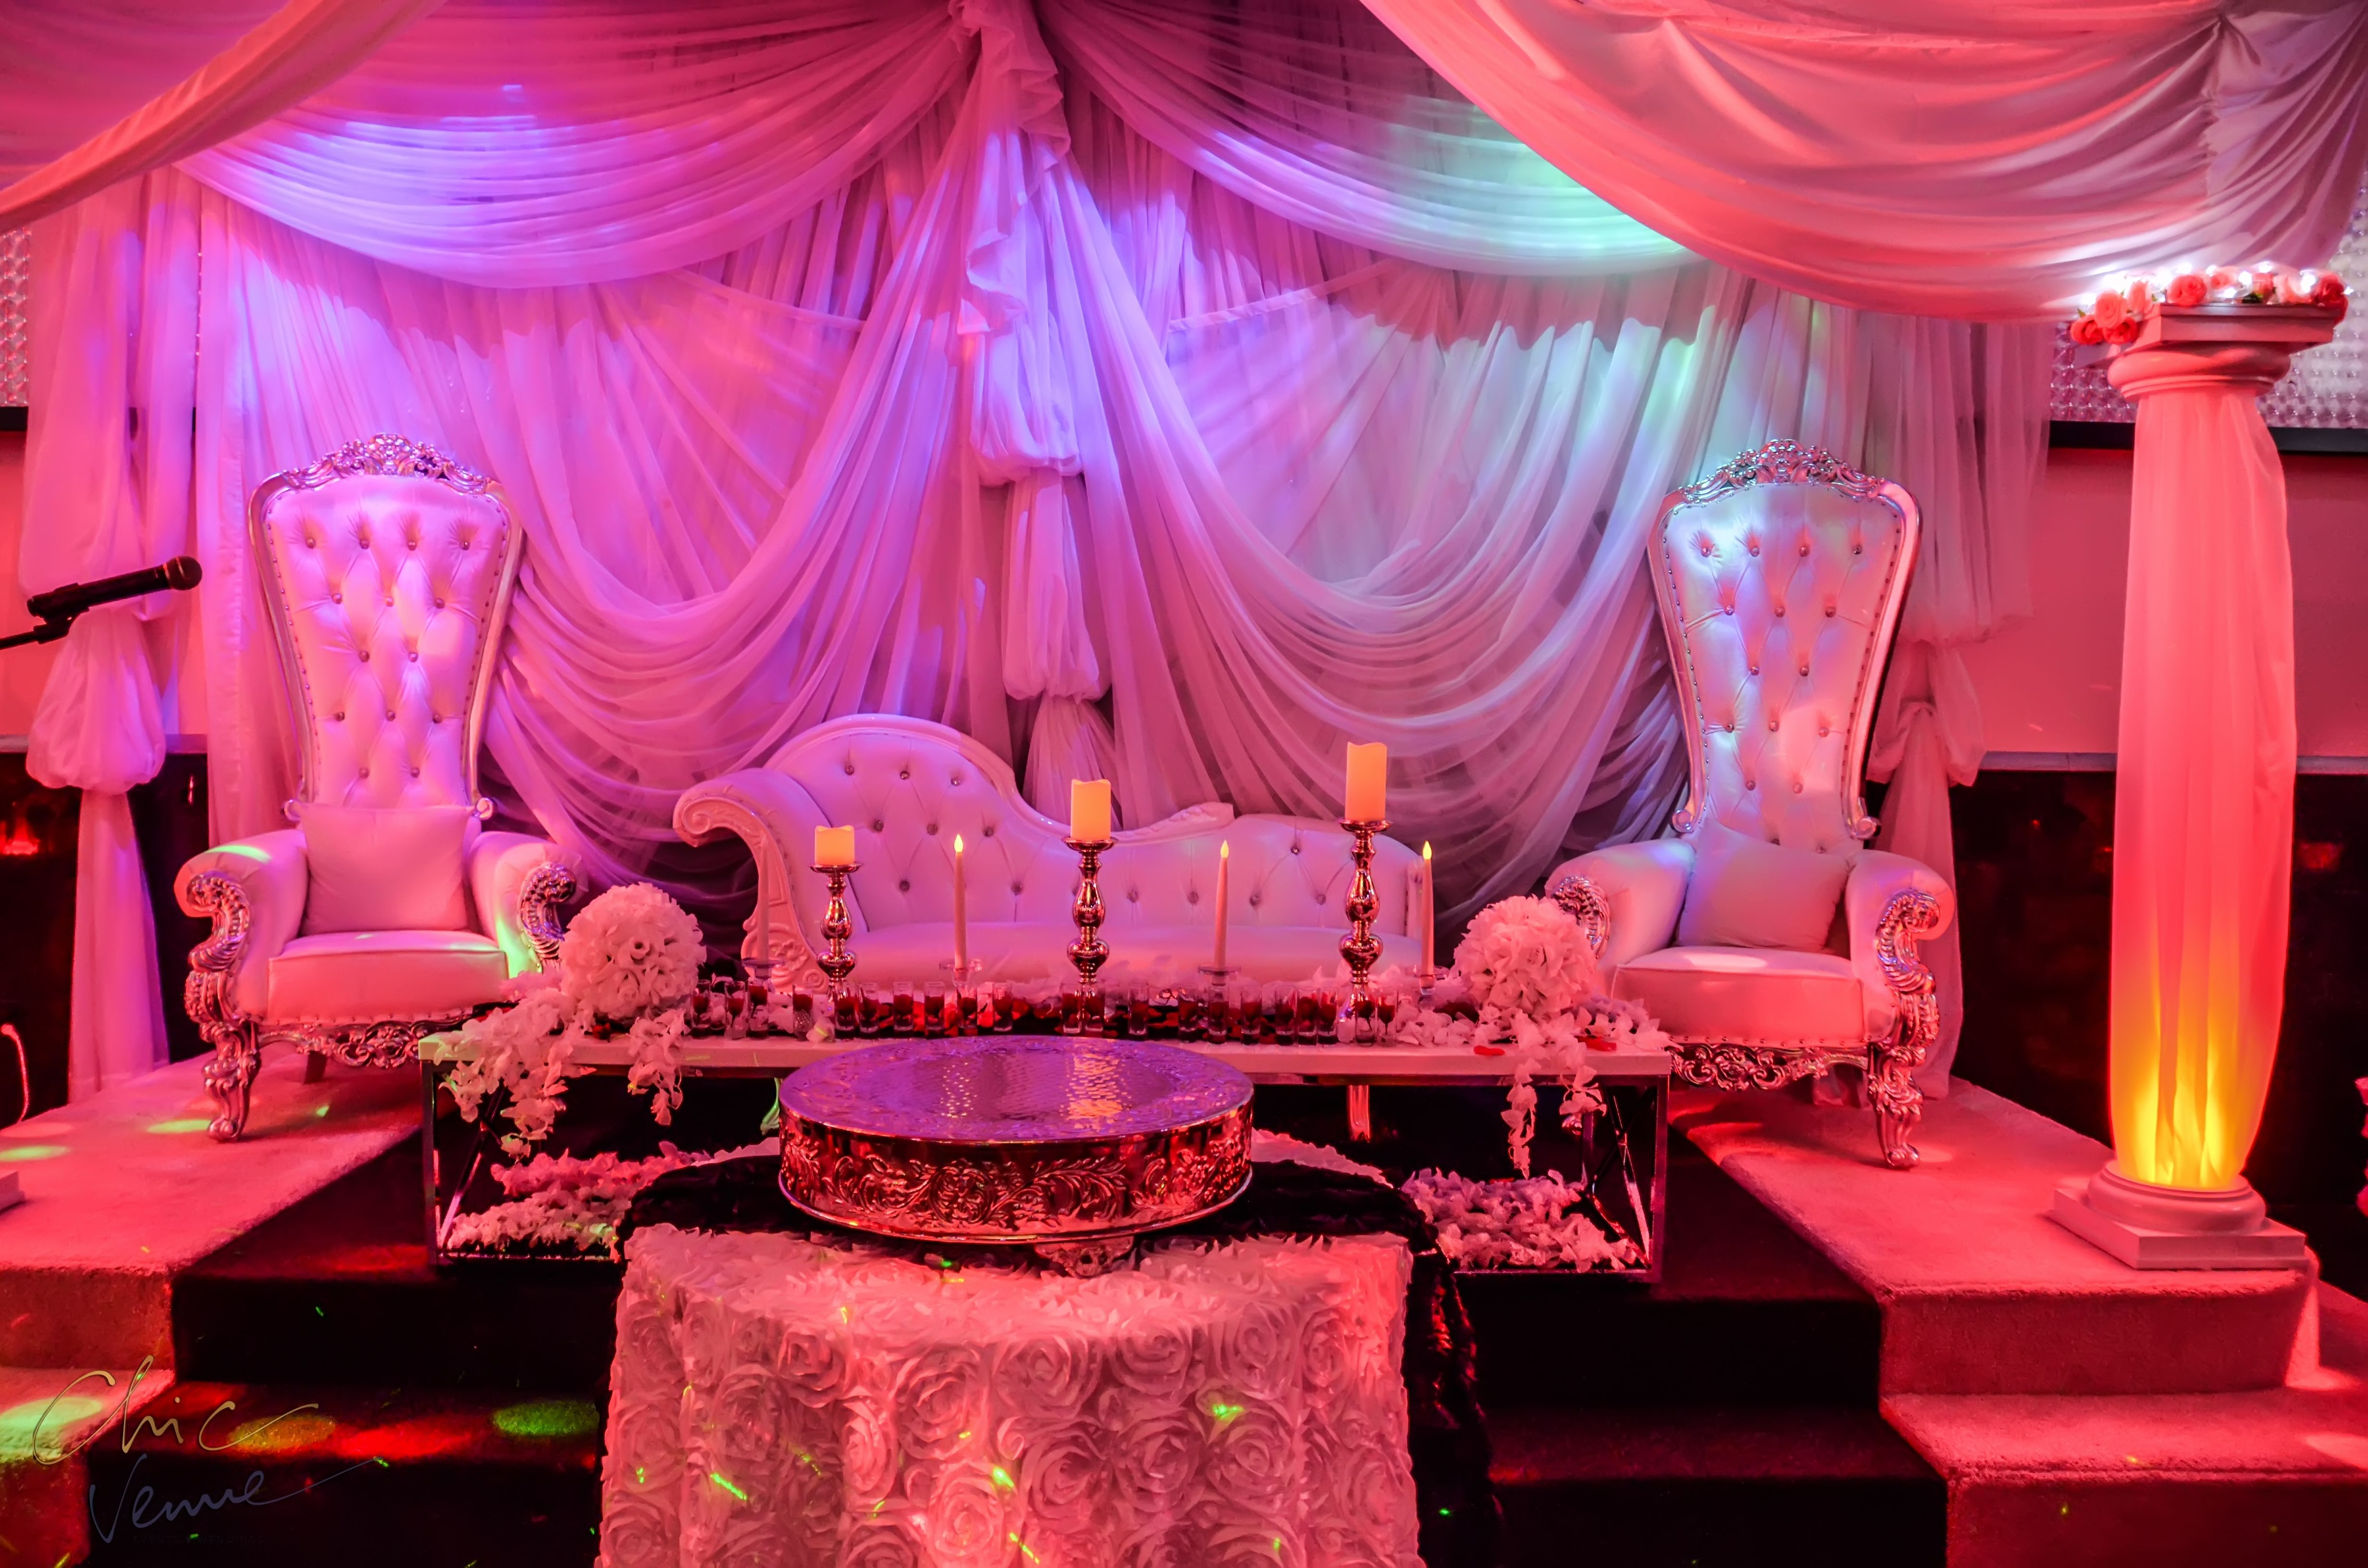 chair cover rental tampa tufted leather chairs packages and pricing chic venue wedding events